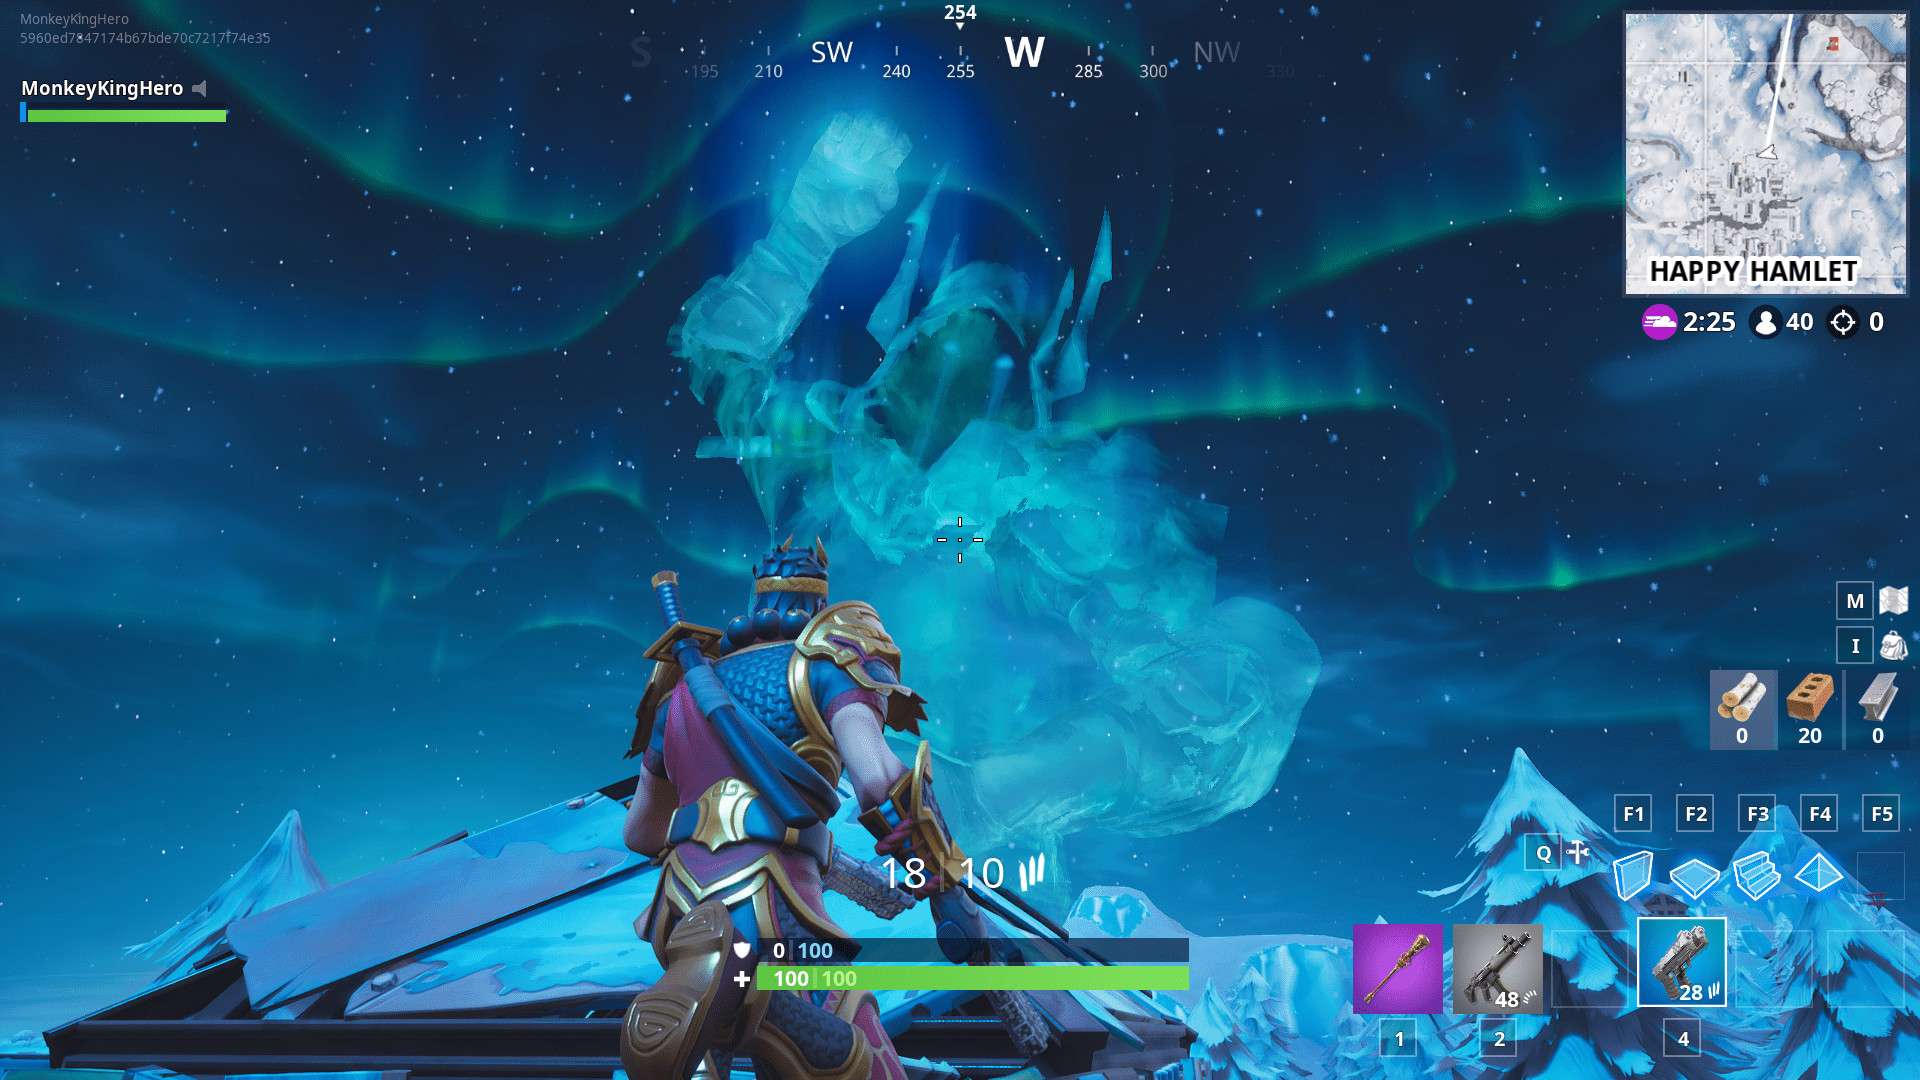 1920x1080 Fortnite' Ice Storm Challenges: How To Find And Destroy 100 Elite Members  Of The Ice Legion